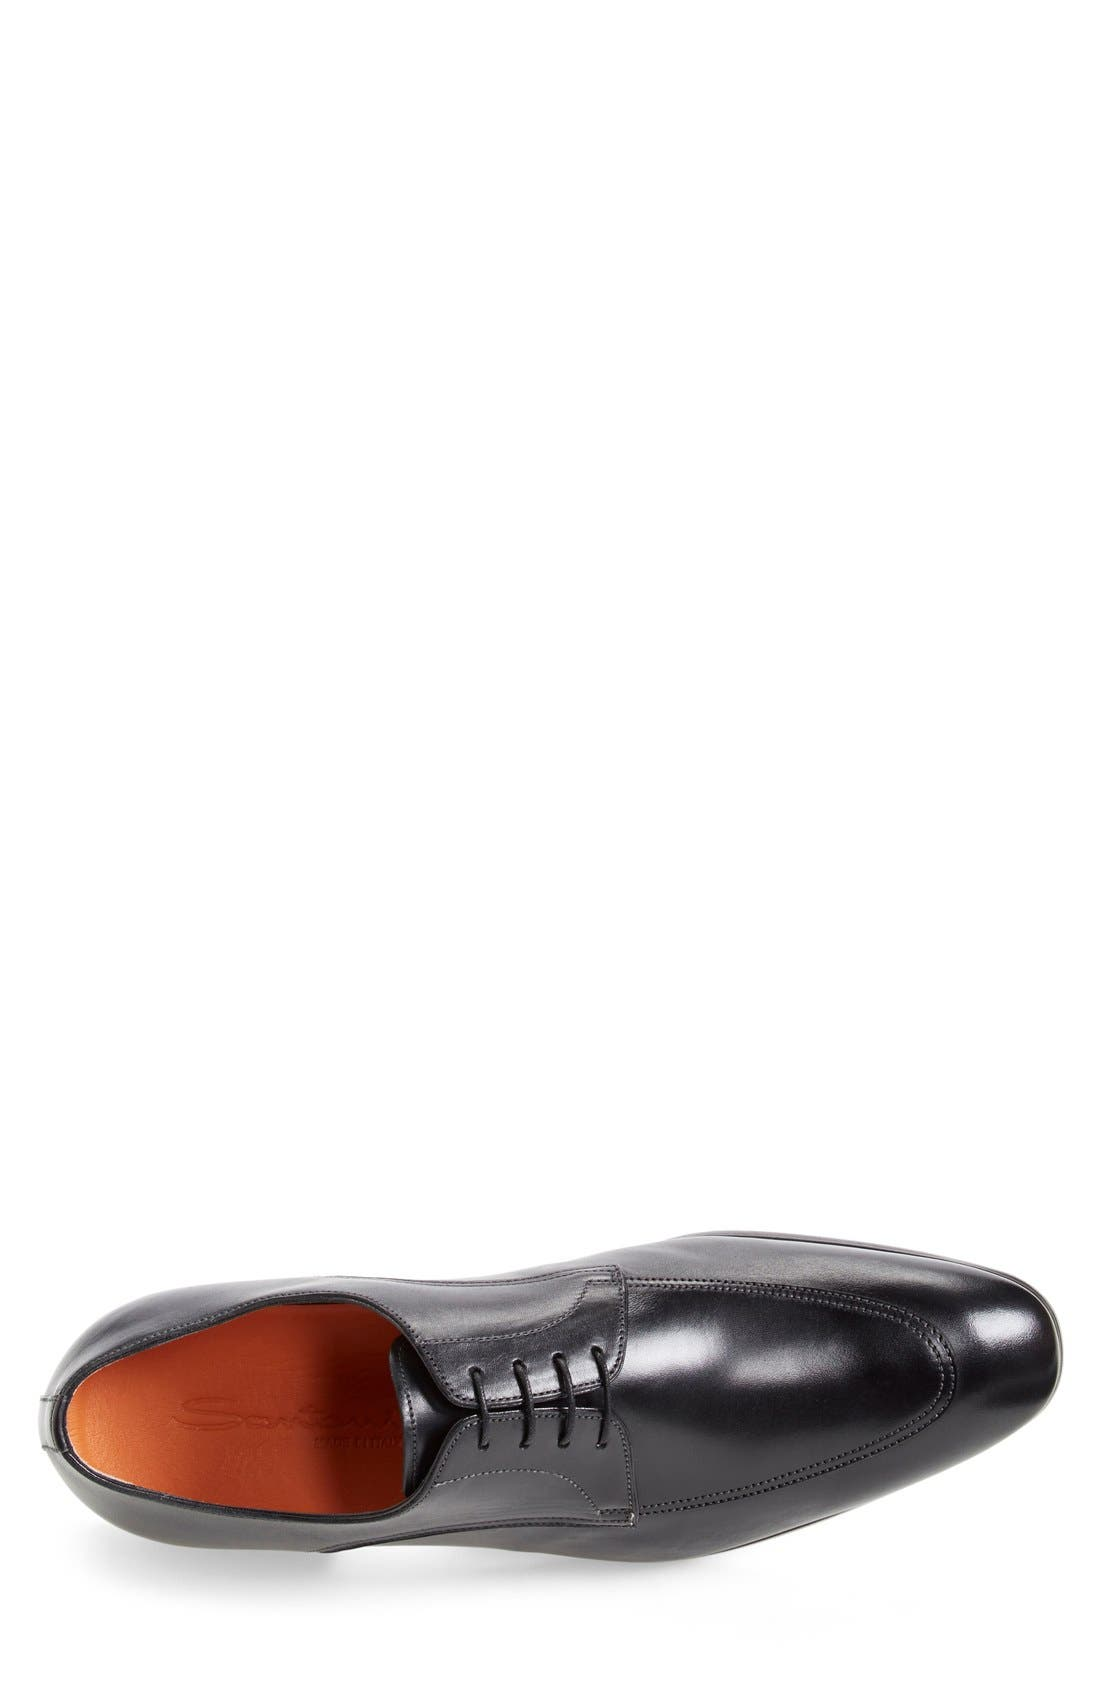 'Atwood' Apron Toe Derby,                             Alternate thumbnail 4, color,                             Black Leather